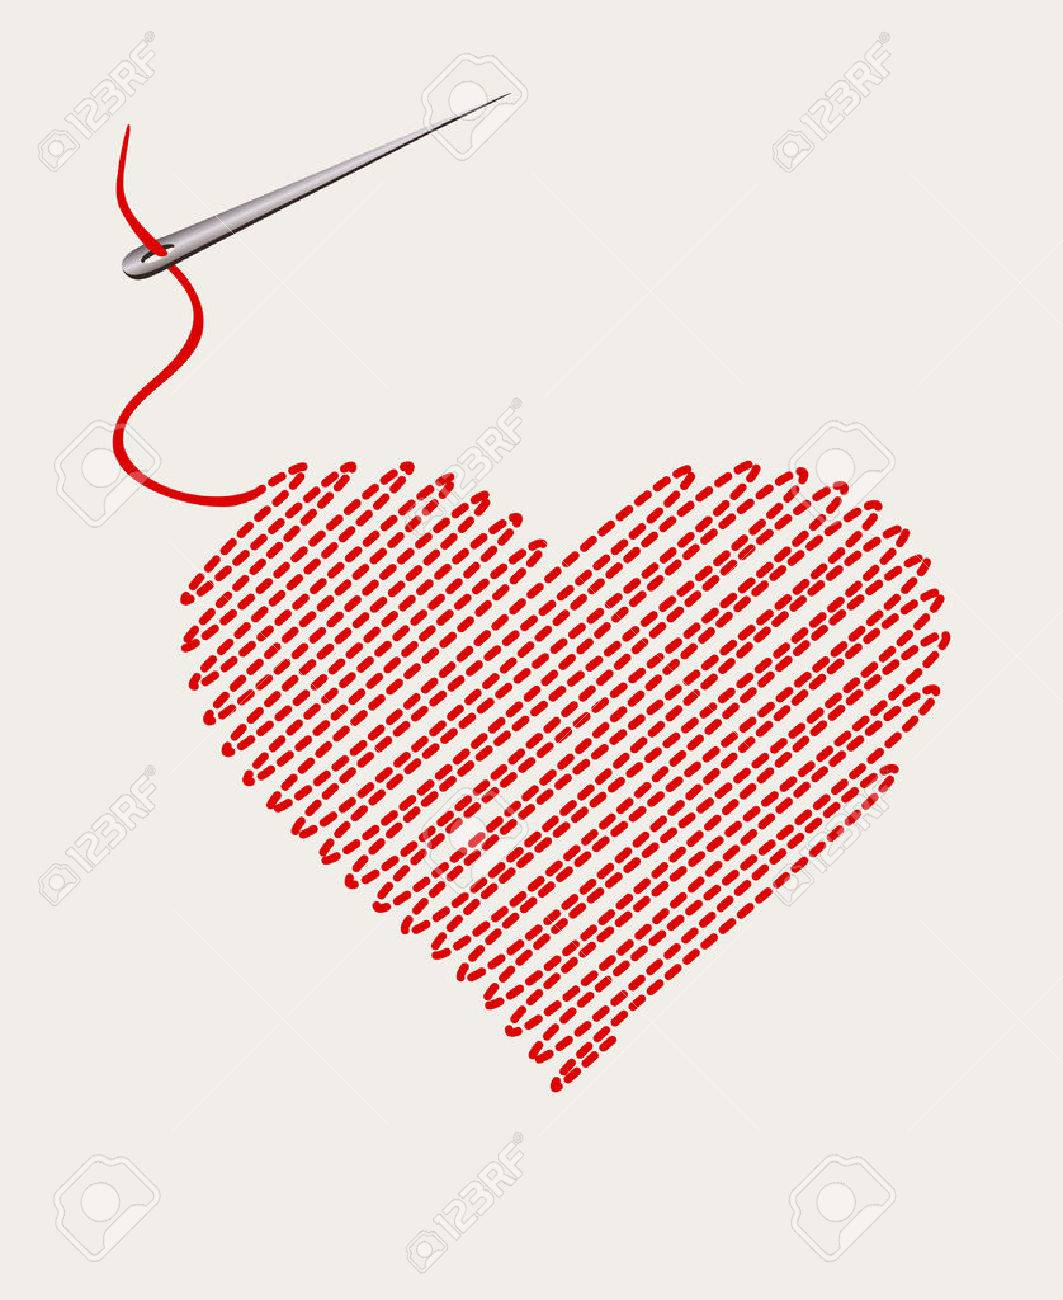 embroidered heart with a needle thread. vector illustration Standard-Bild - 48644542